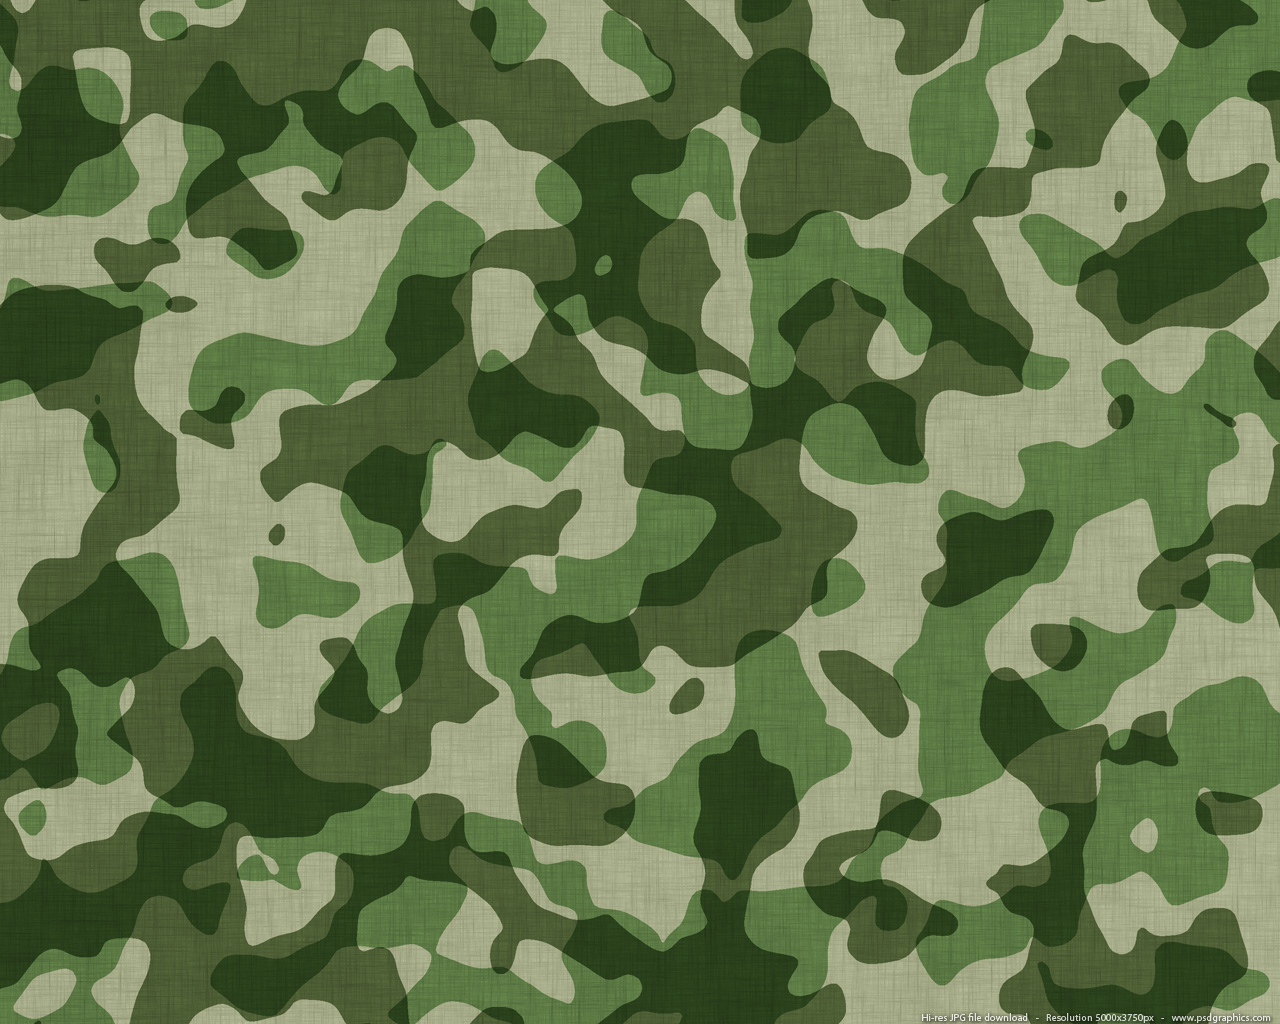 Military camouflage pattern, fabric texture created in Photoshop.